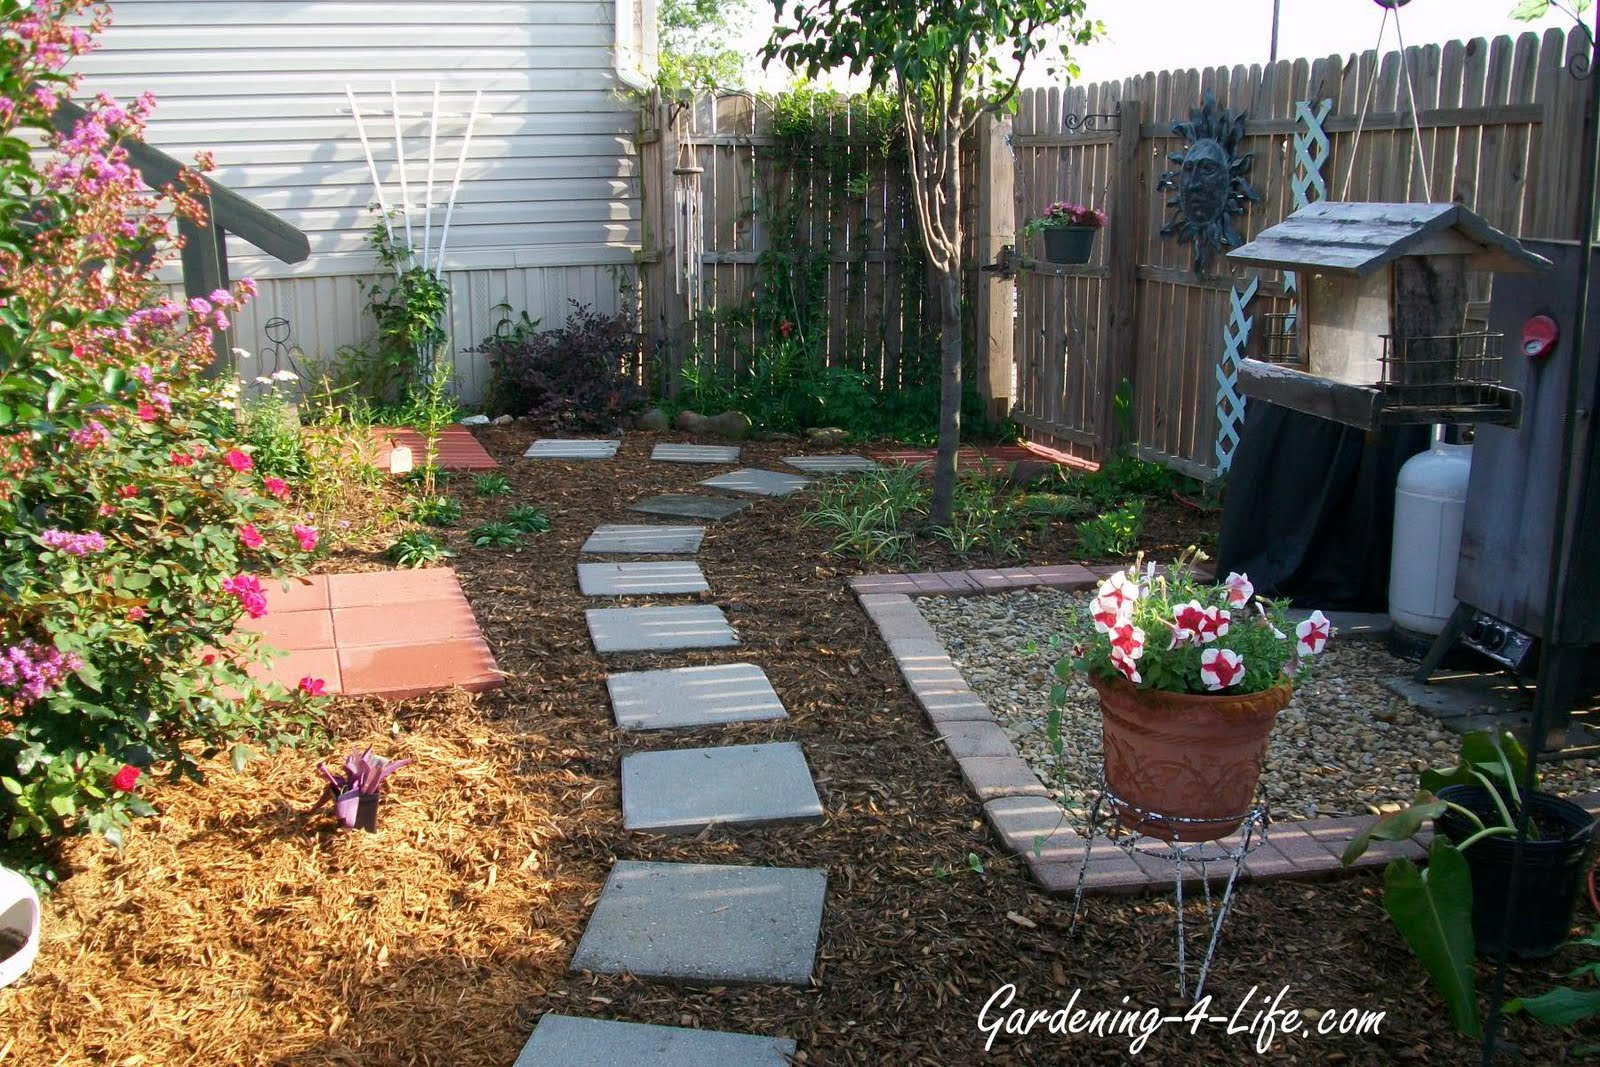 Gardening-4-Life: Backyard Makeover on Backyard Renovation Ideas id=61704